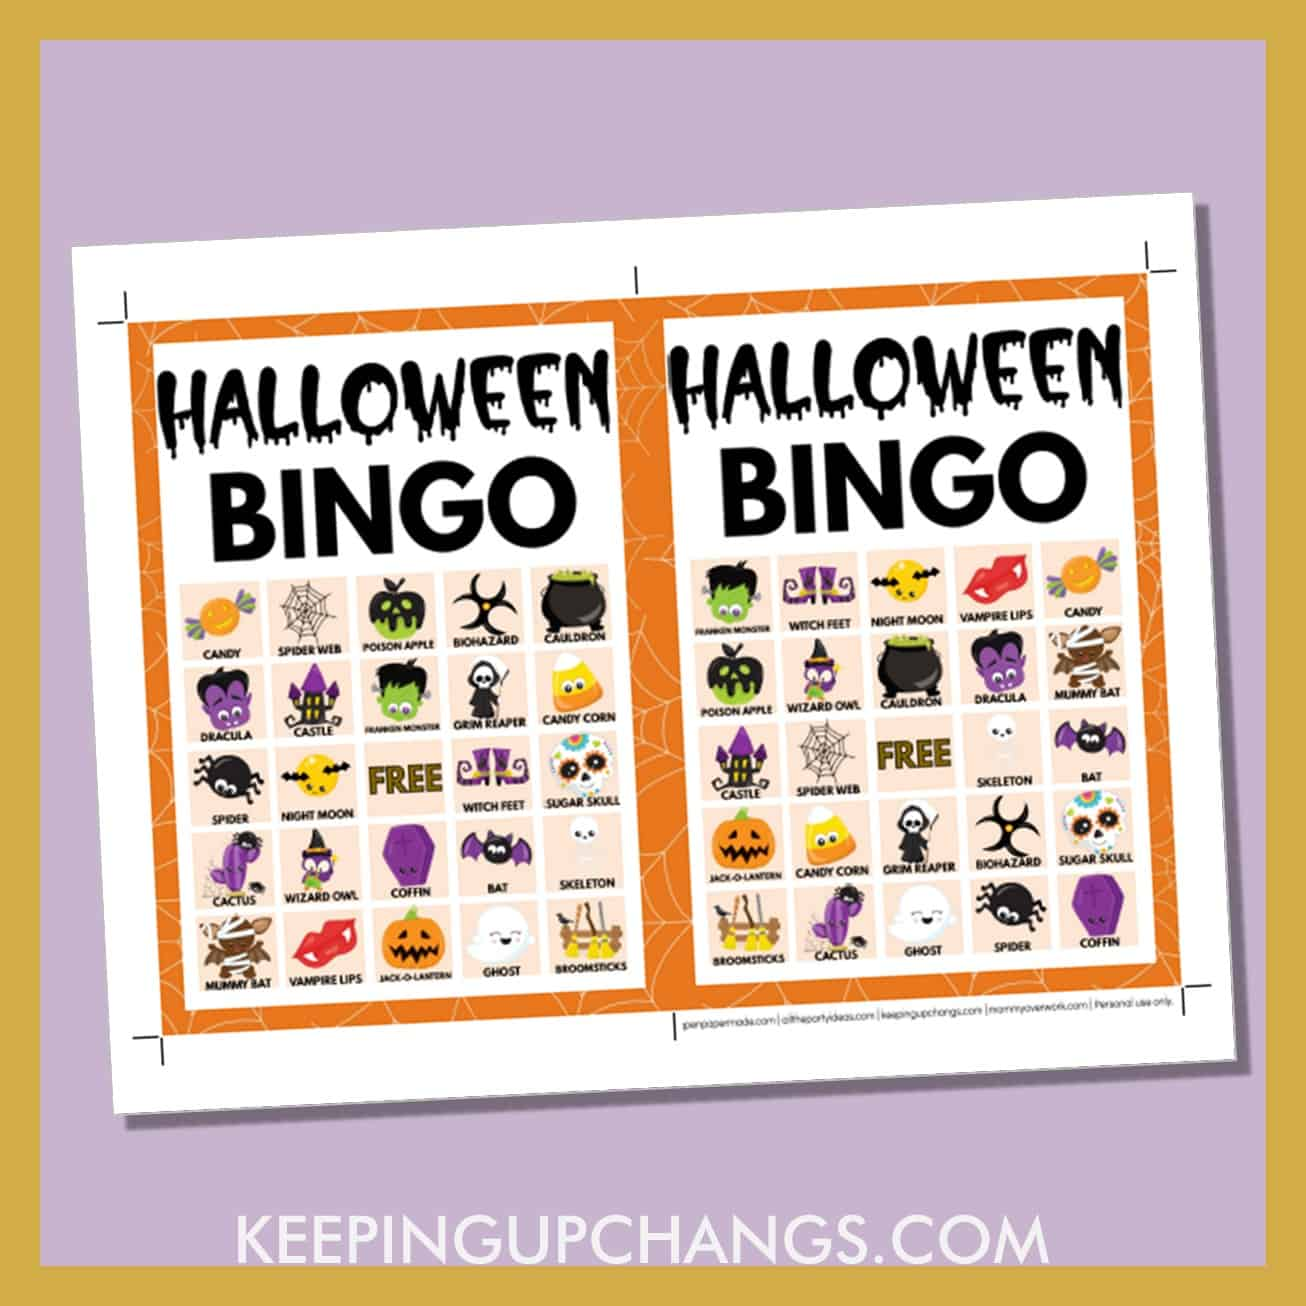 free fall halloween bingo card 5x5 5x7 game boards with images and text words.